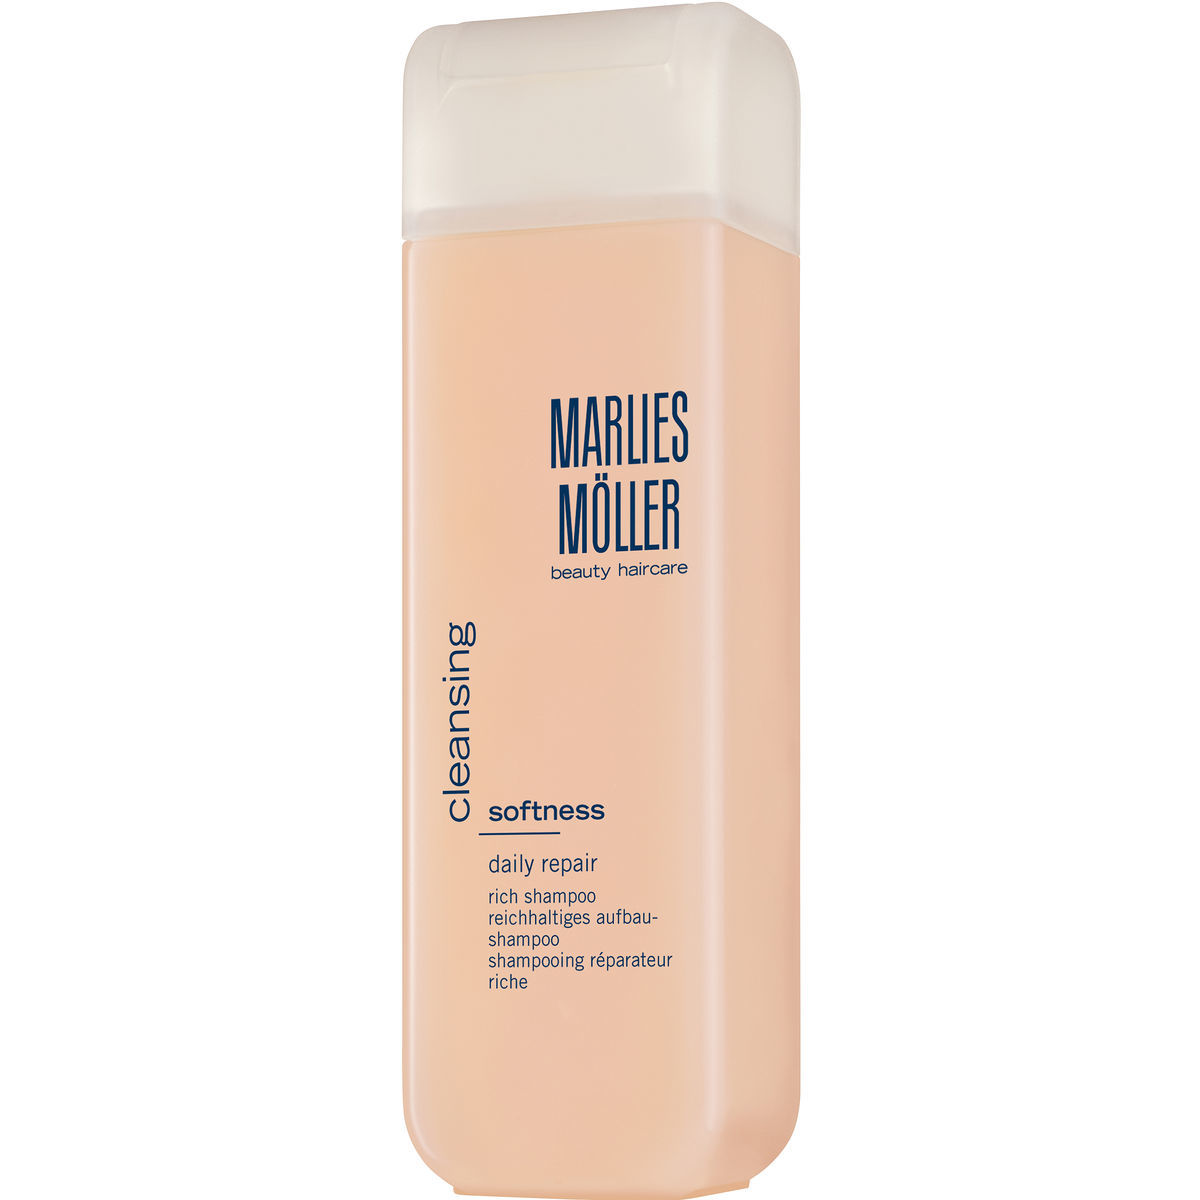 Marlies Möller Softness, Daily Repair Shampoo, 200 ml